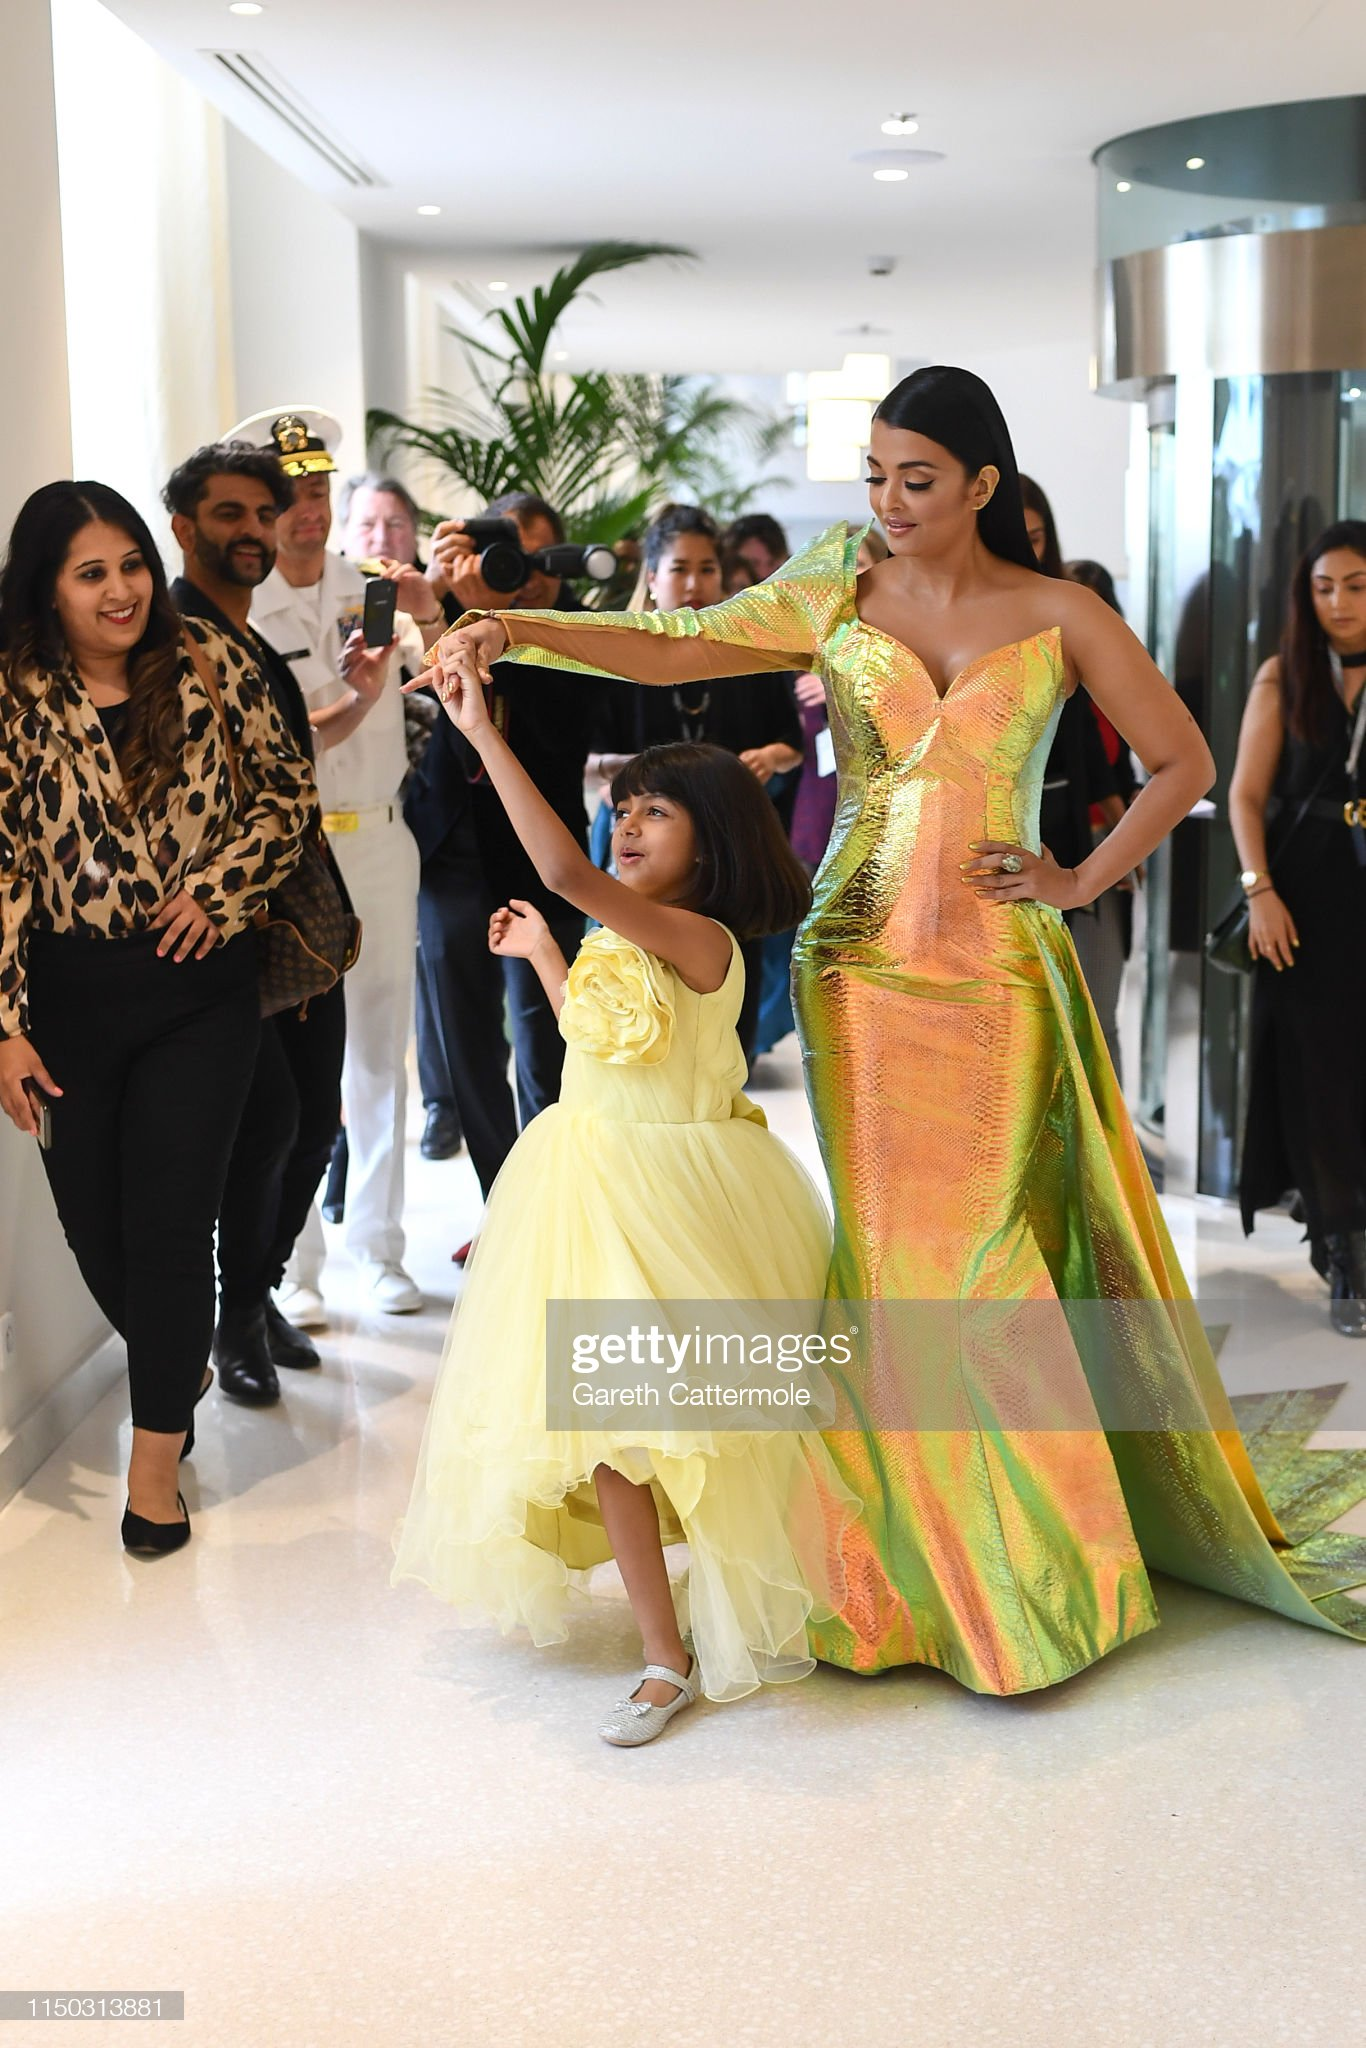 https://media.gettyimages.com/photos/aishwarya-rai-and-her-daughter-aaradhya-during-the-72nd-annual-cannes-picture-id1150313881?s=2048x2048